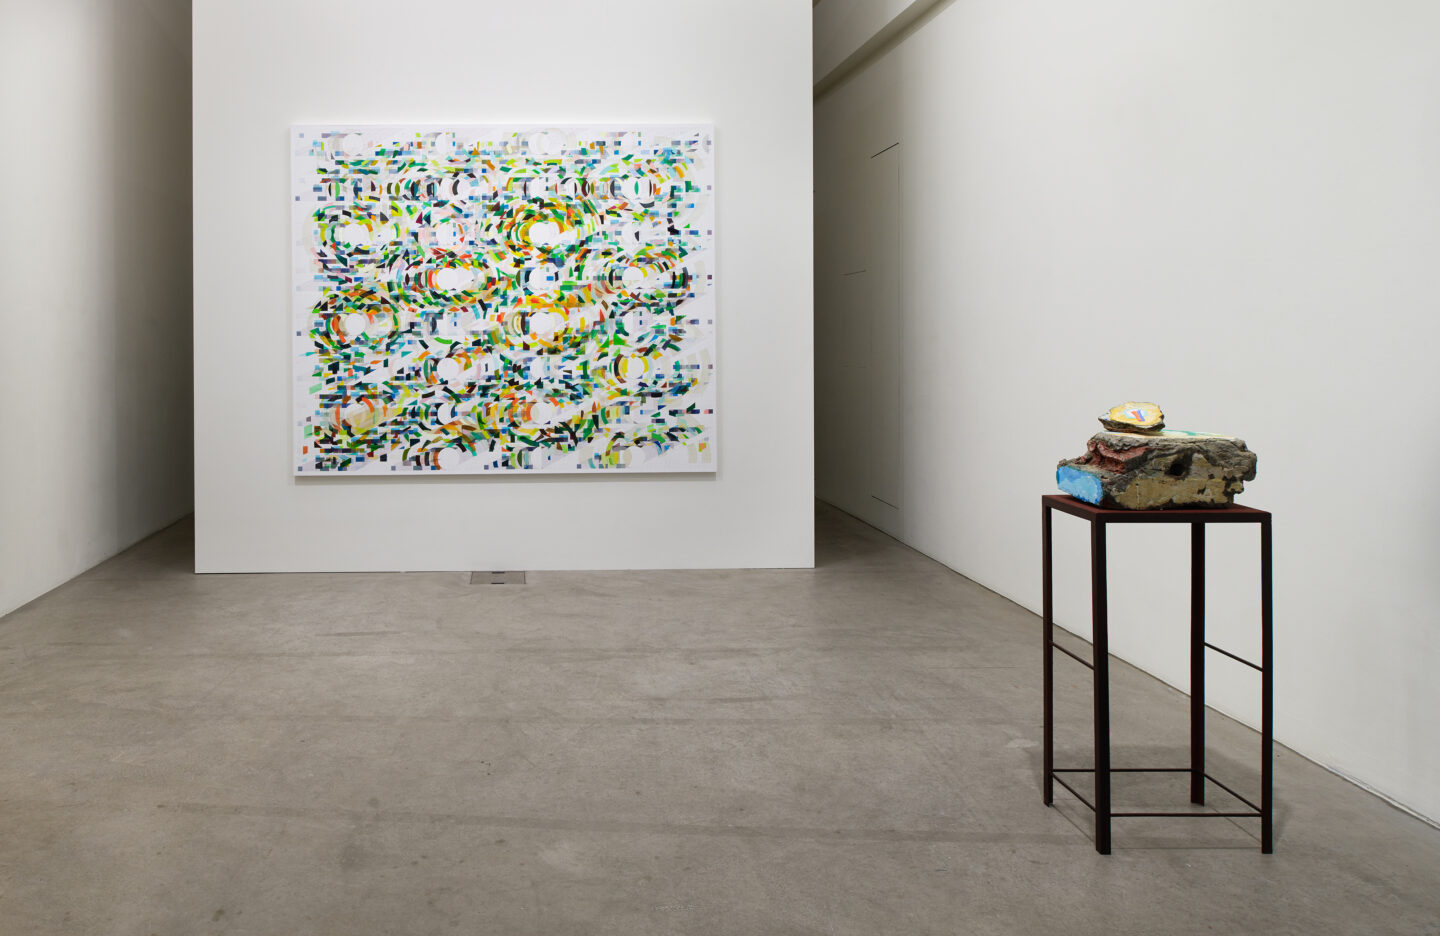 Exhibition View Tanya Goel Soloshow «Equations in a Variable» at Galerie Urs Meile, Luzern, 2019 / Courtesy: the artist and Galerie Urs Meile